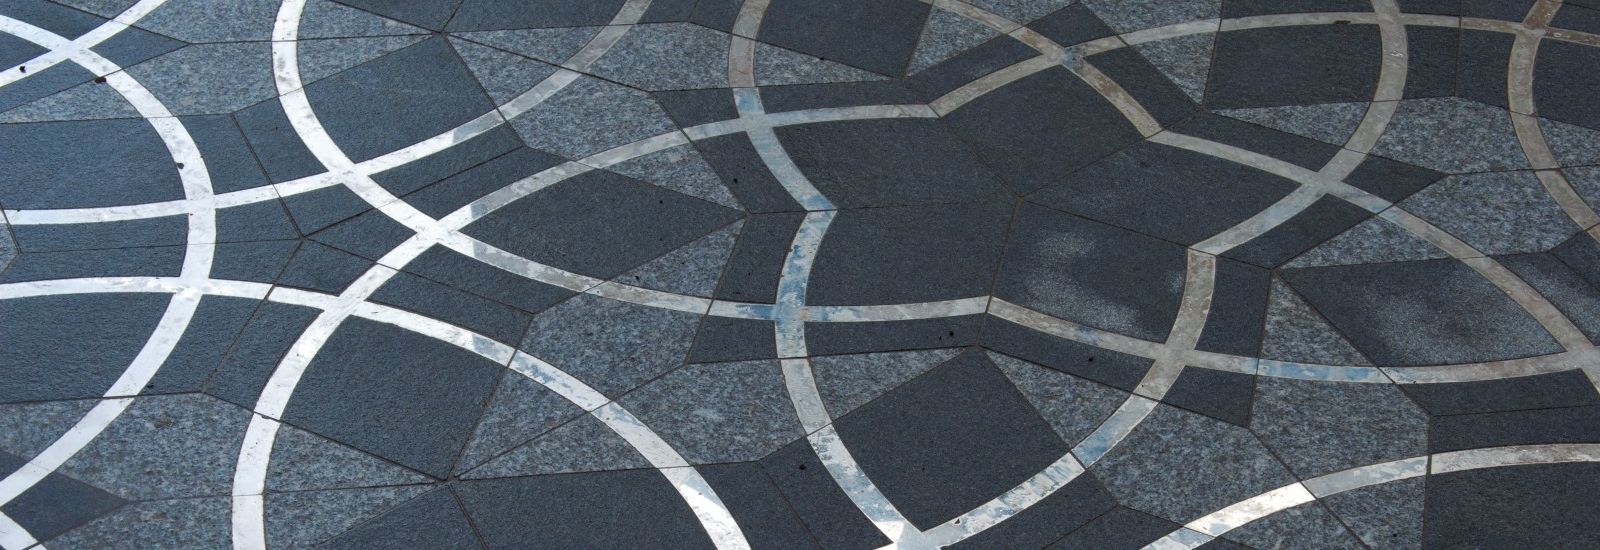 Paving outside the Maths Institute, Oxford